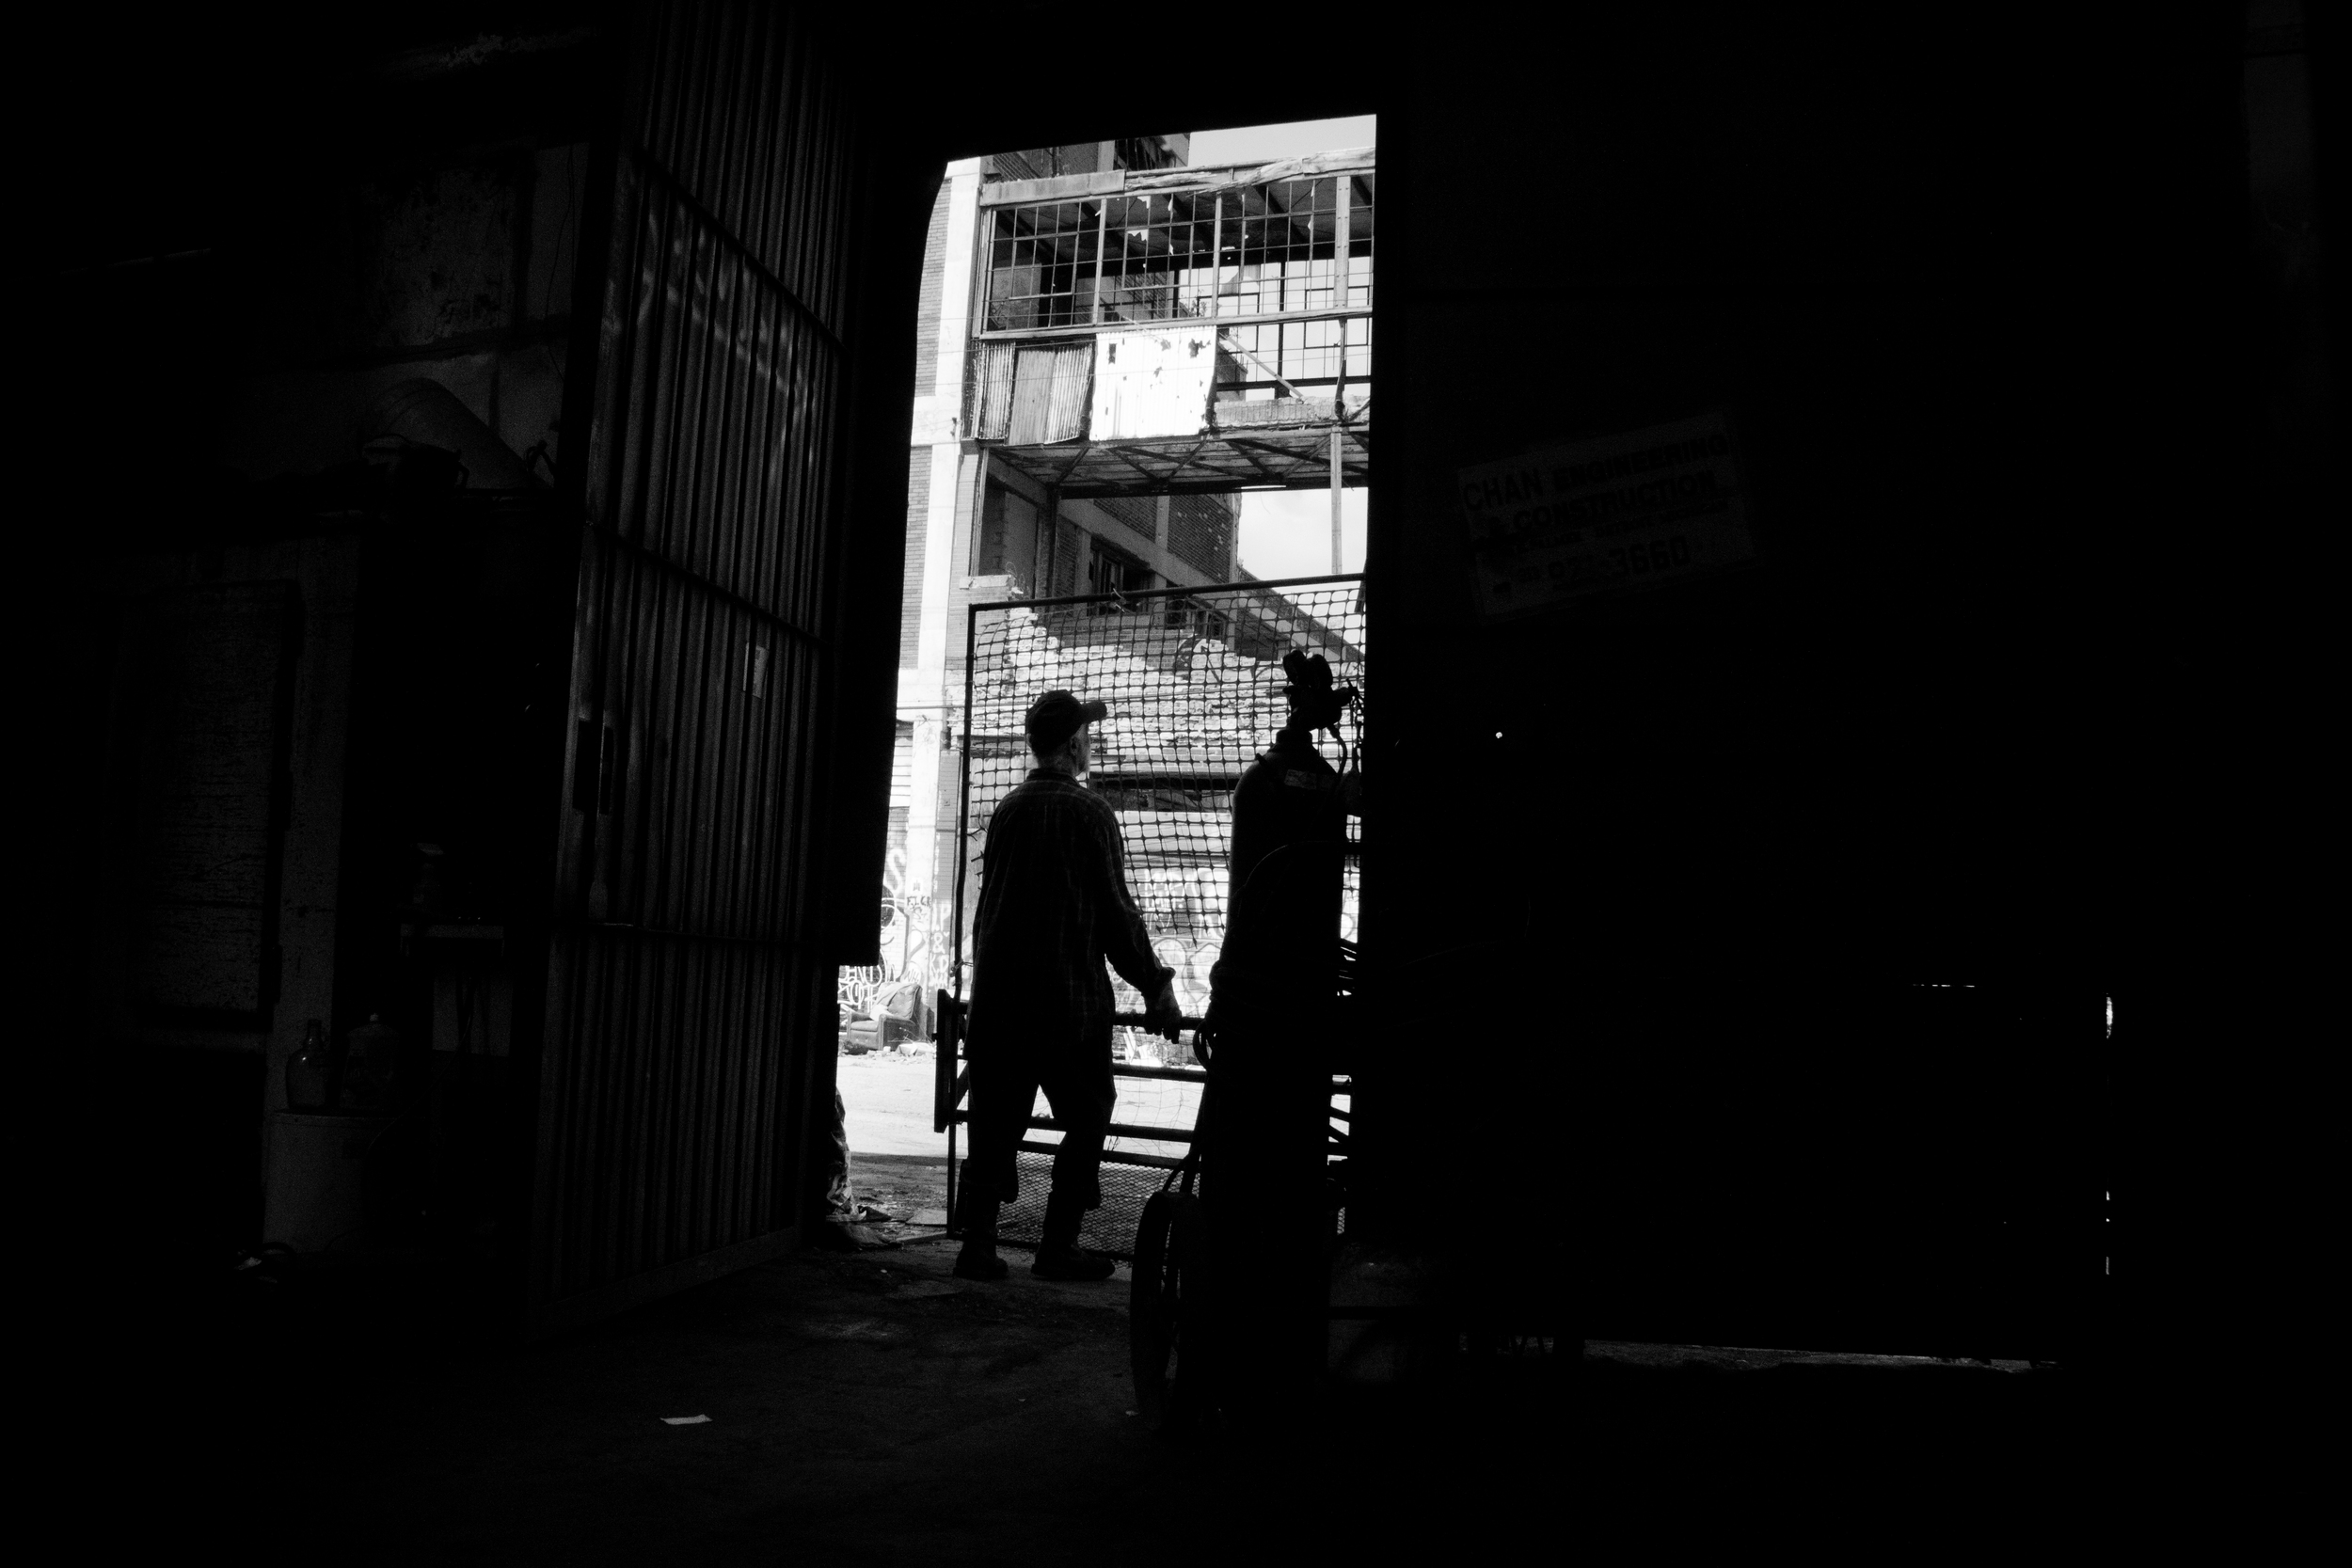 A local scrapper heads out from his warehouse in search of metal.